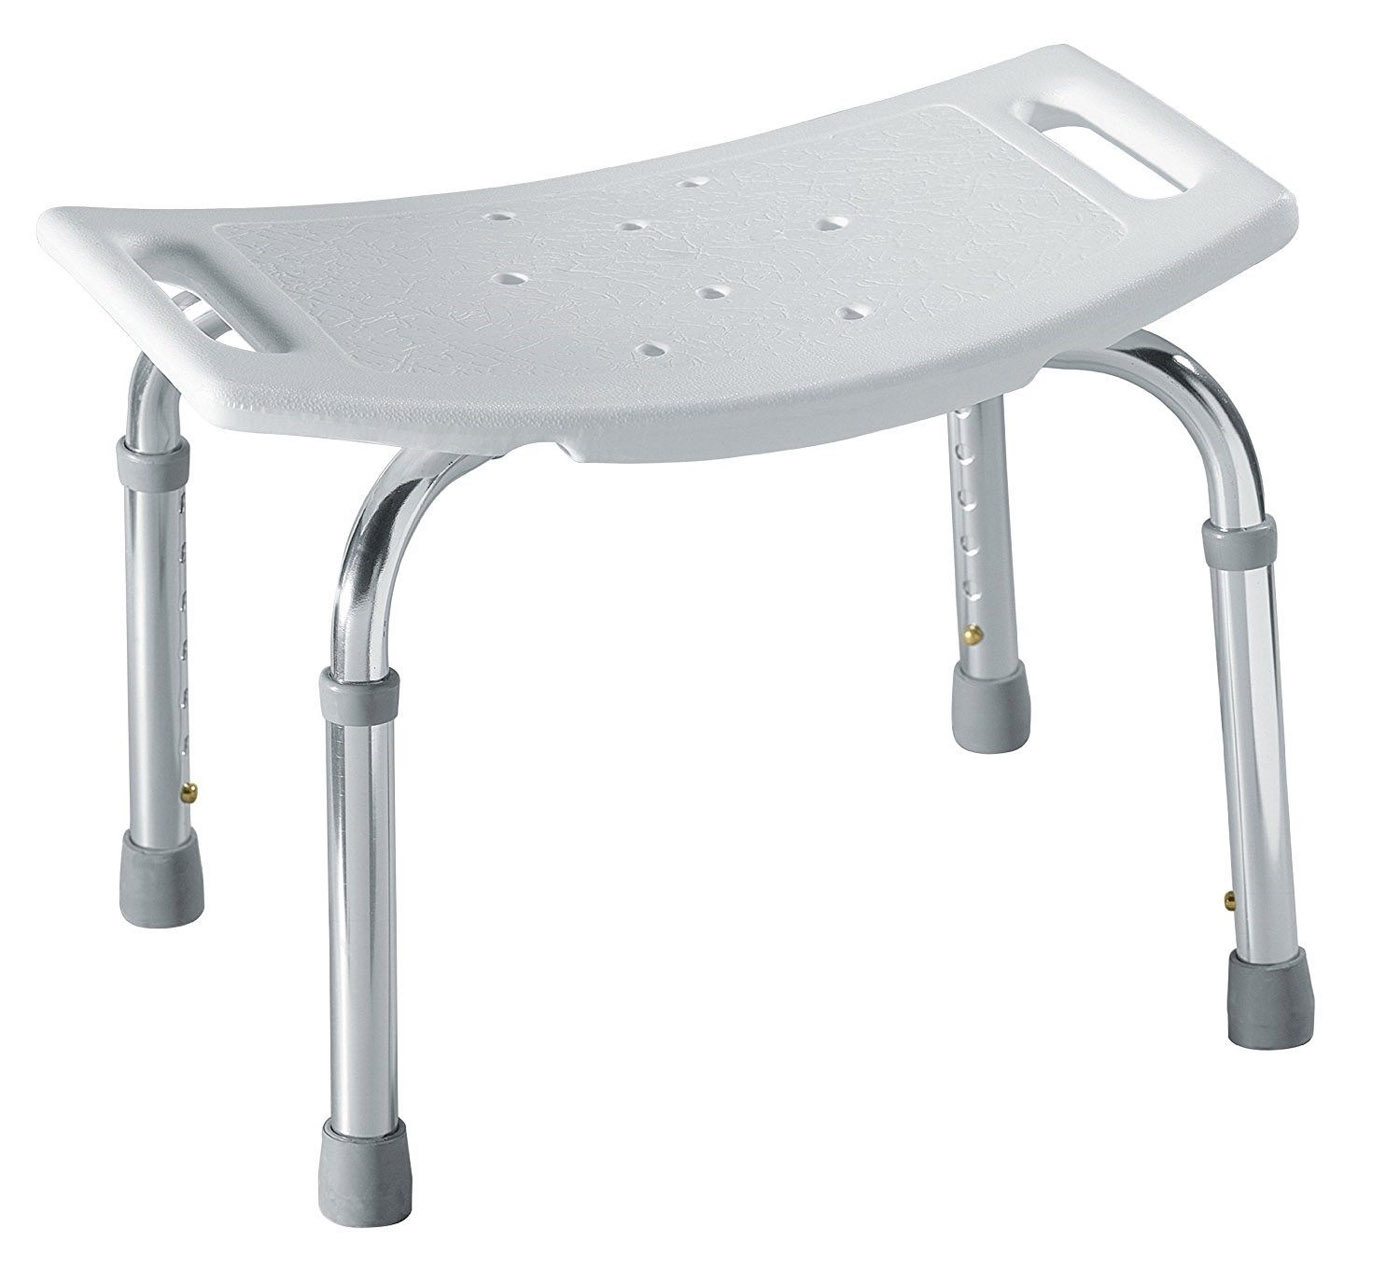 Donner Home Care Adjustable Shower Seat, Stainless Steel, Glacier/White